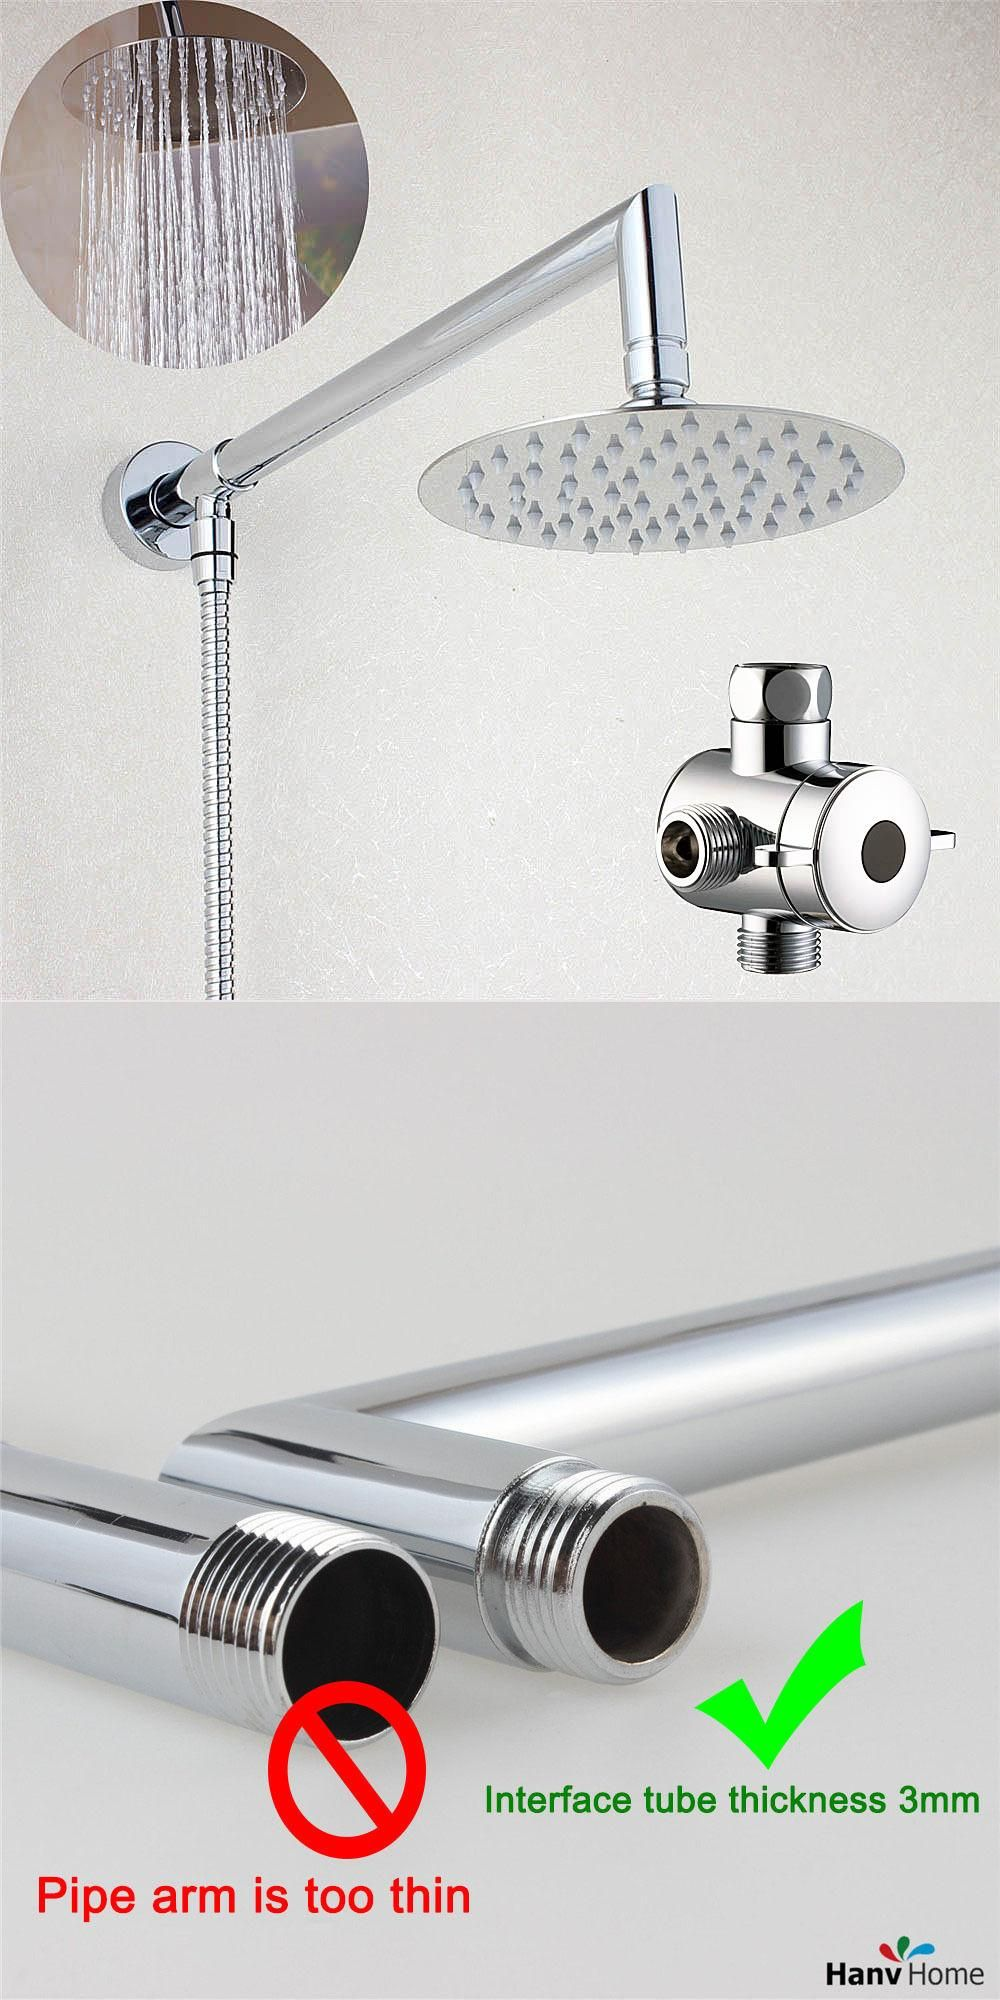 Visit to Buy] Bathroom 6 or 8 inch Round Rain Shower Head with Brass ...